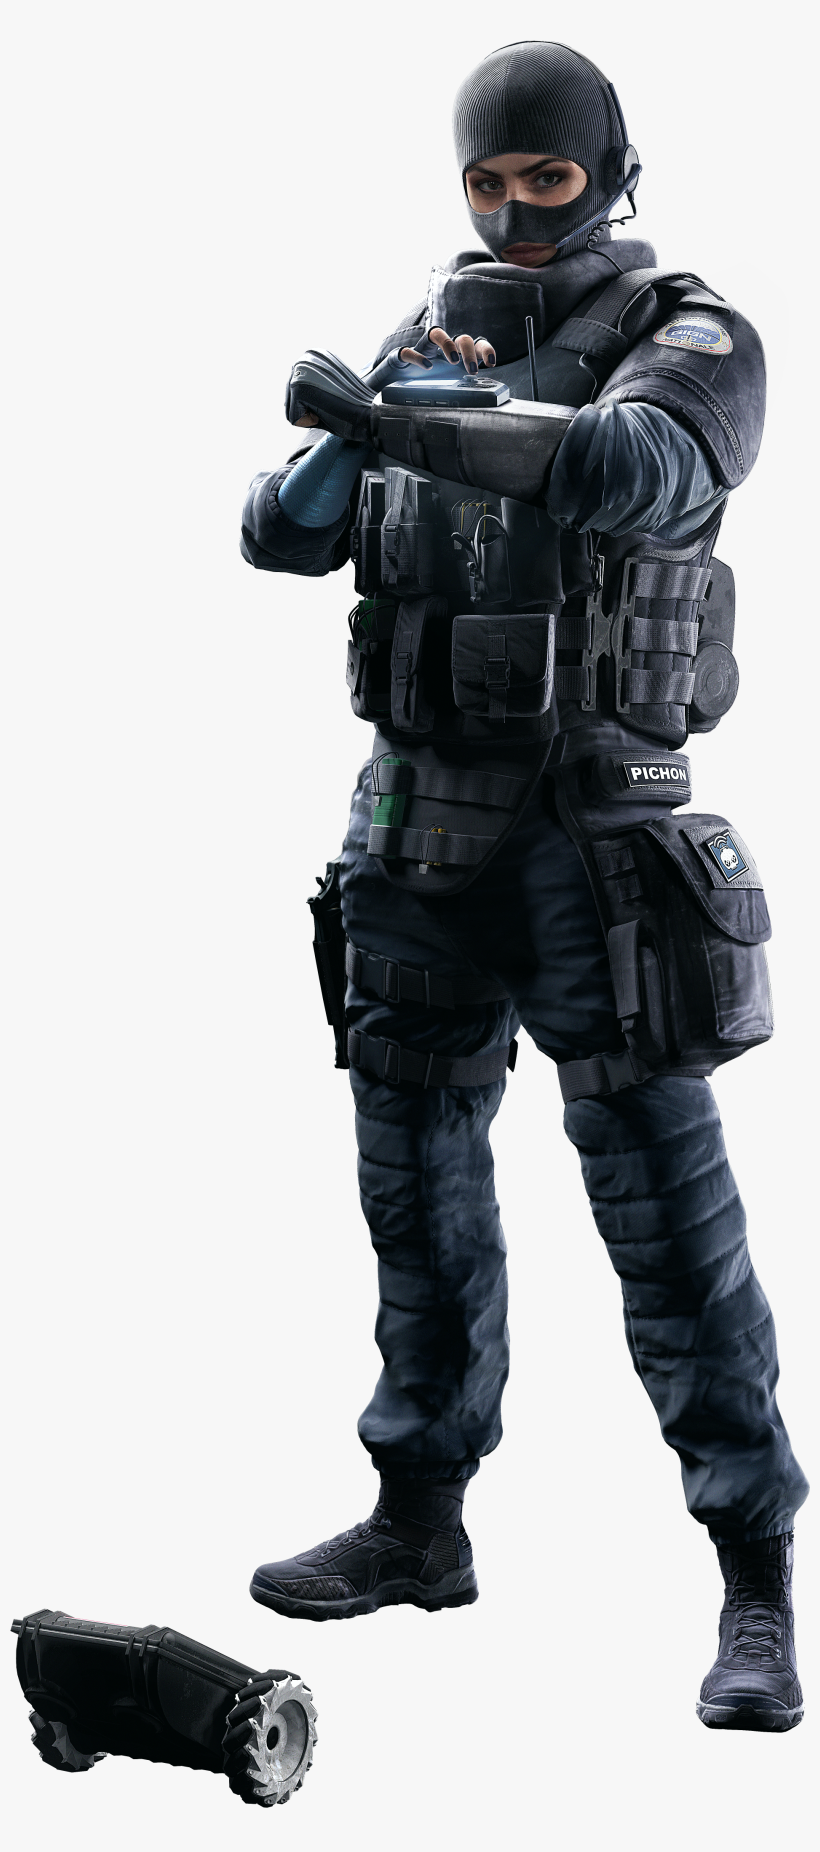 Twitch Rainbow Six Siege Png Png Image Transparent Png Free